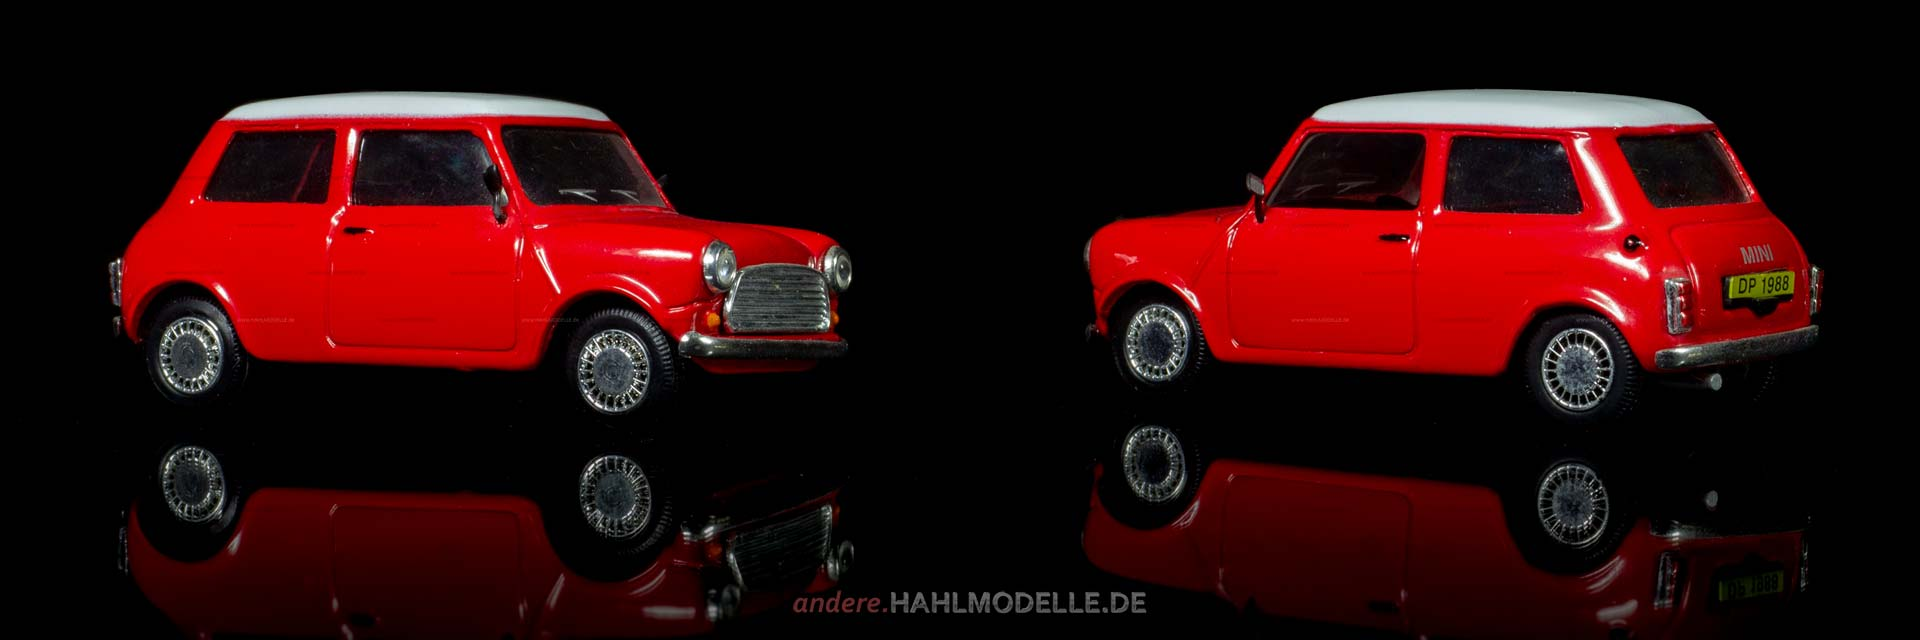 BMC Mini Cooper | Kleinwagen | Ixo (Del Prado Car Collection) | 1:43 | www.andere.hahlmodelle.de